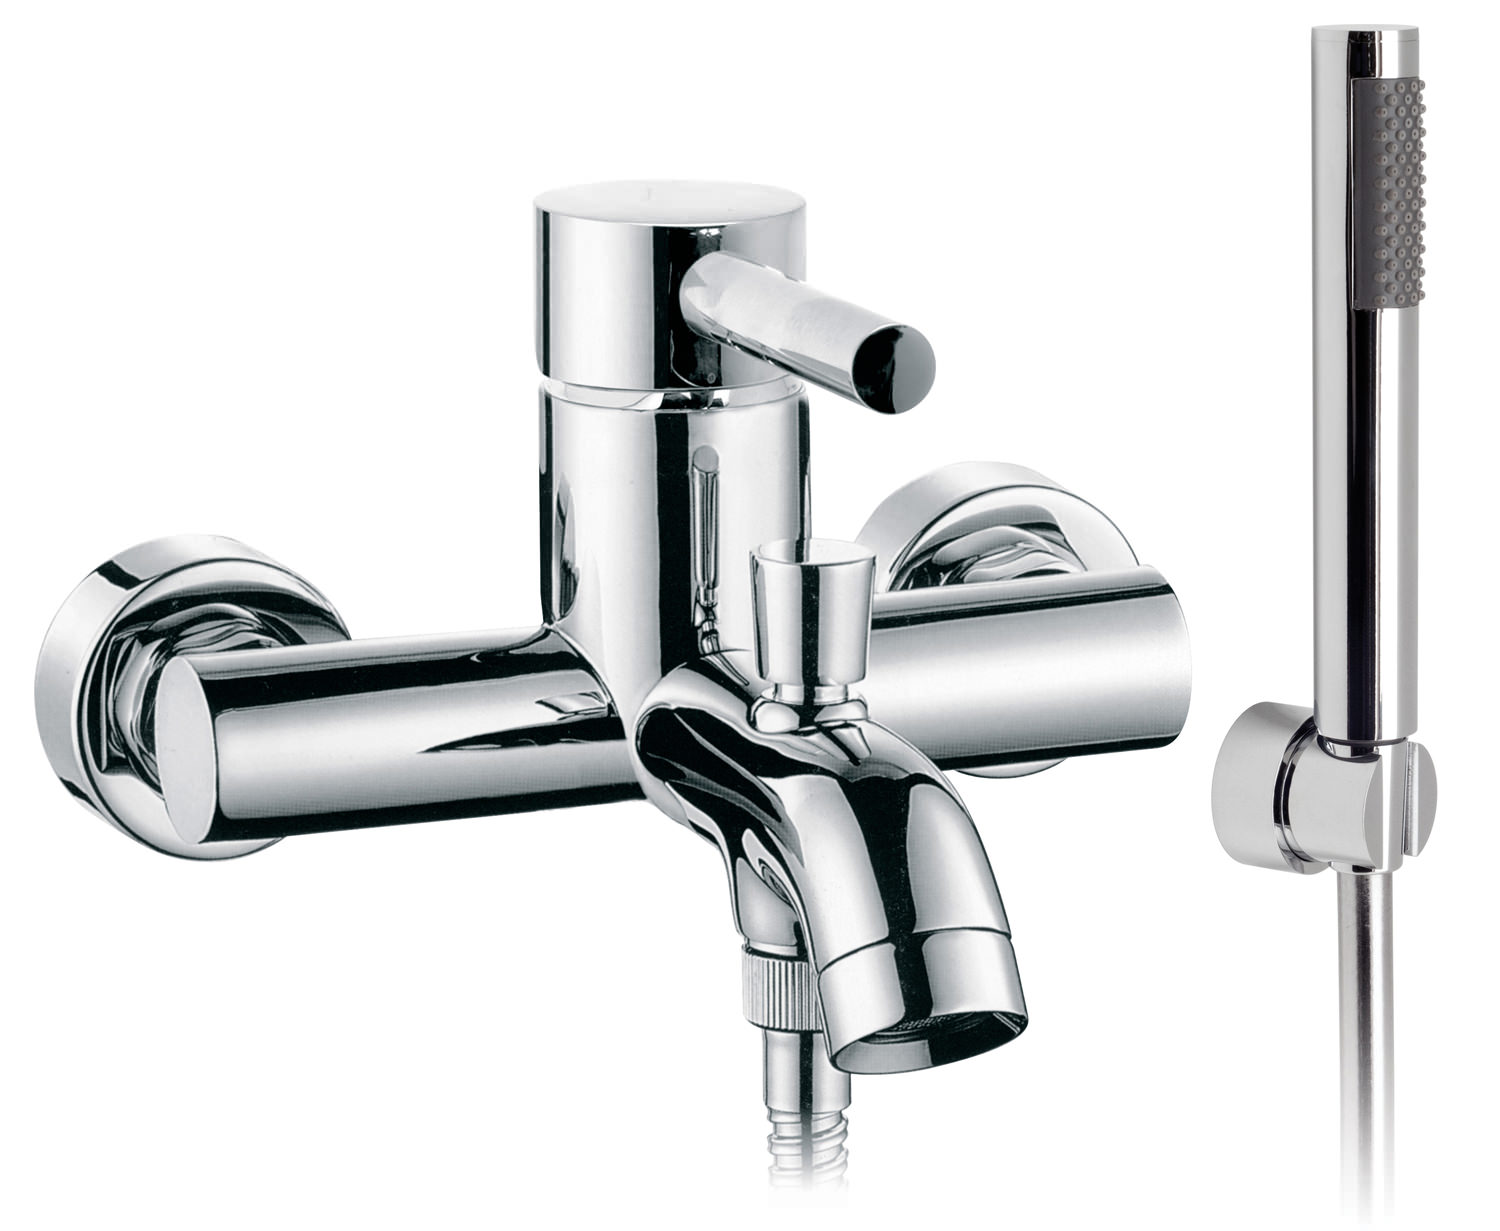 Vado Zoo Wall Mounted Bath Shower Mixer Tap With Kit